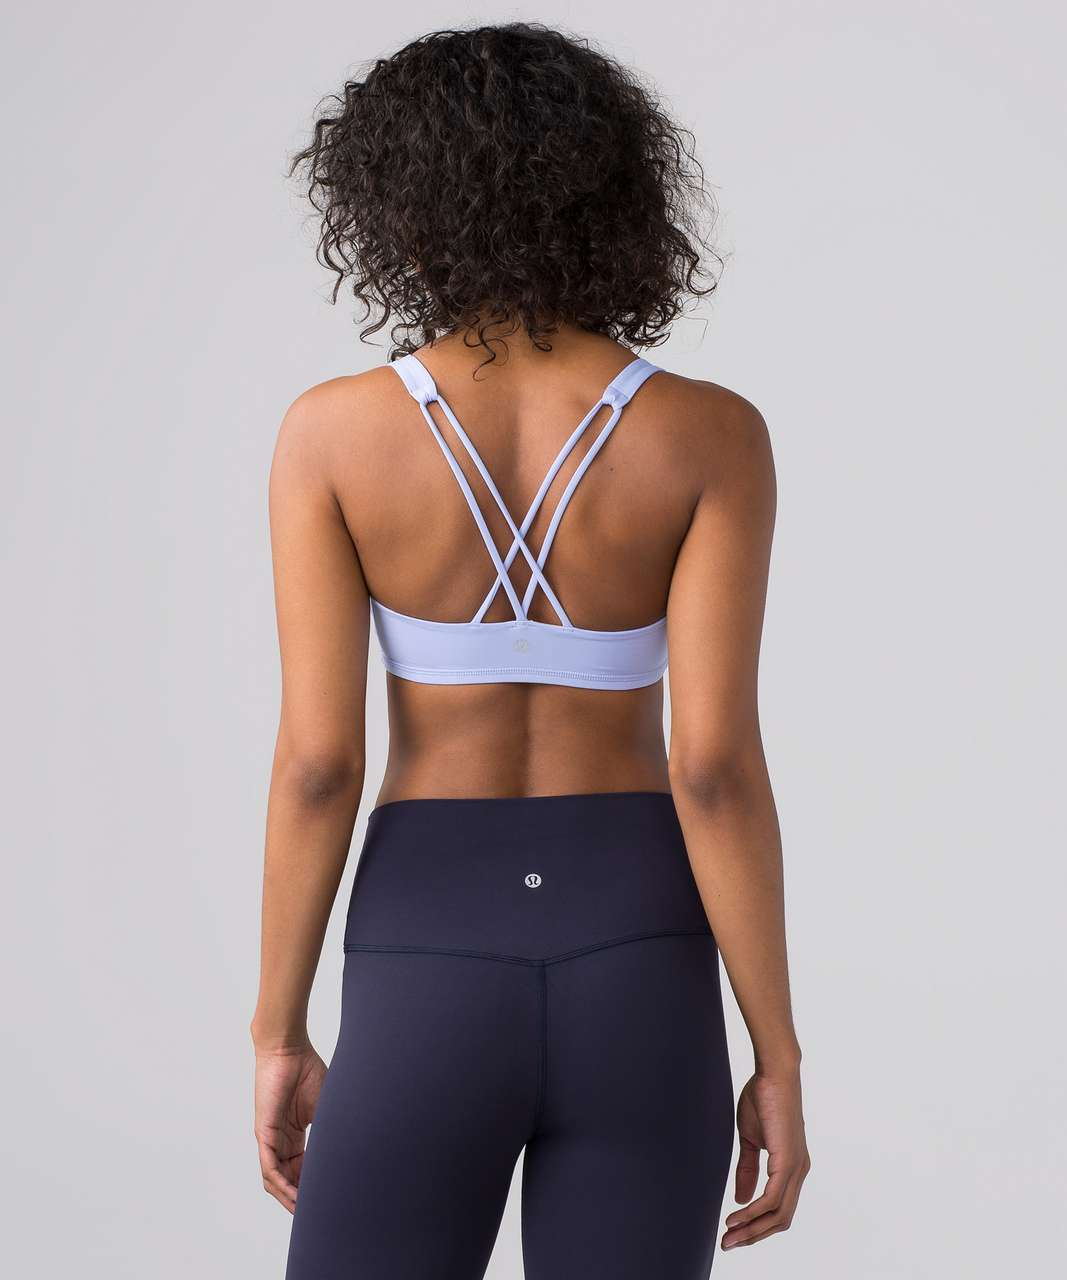 Lululemon Free To Be Bra - Lavender Dusk